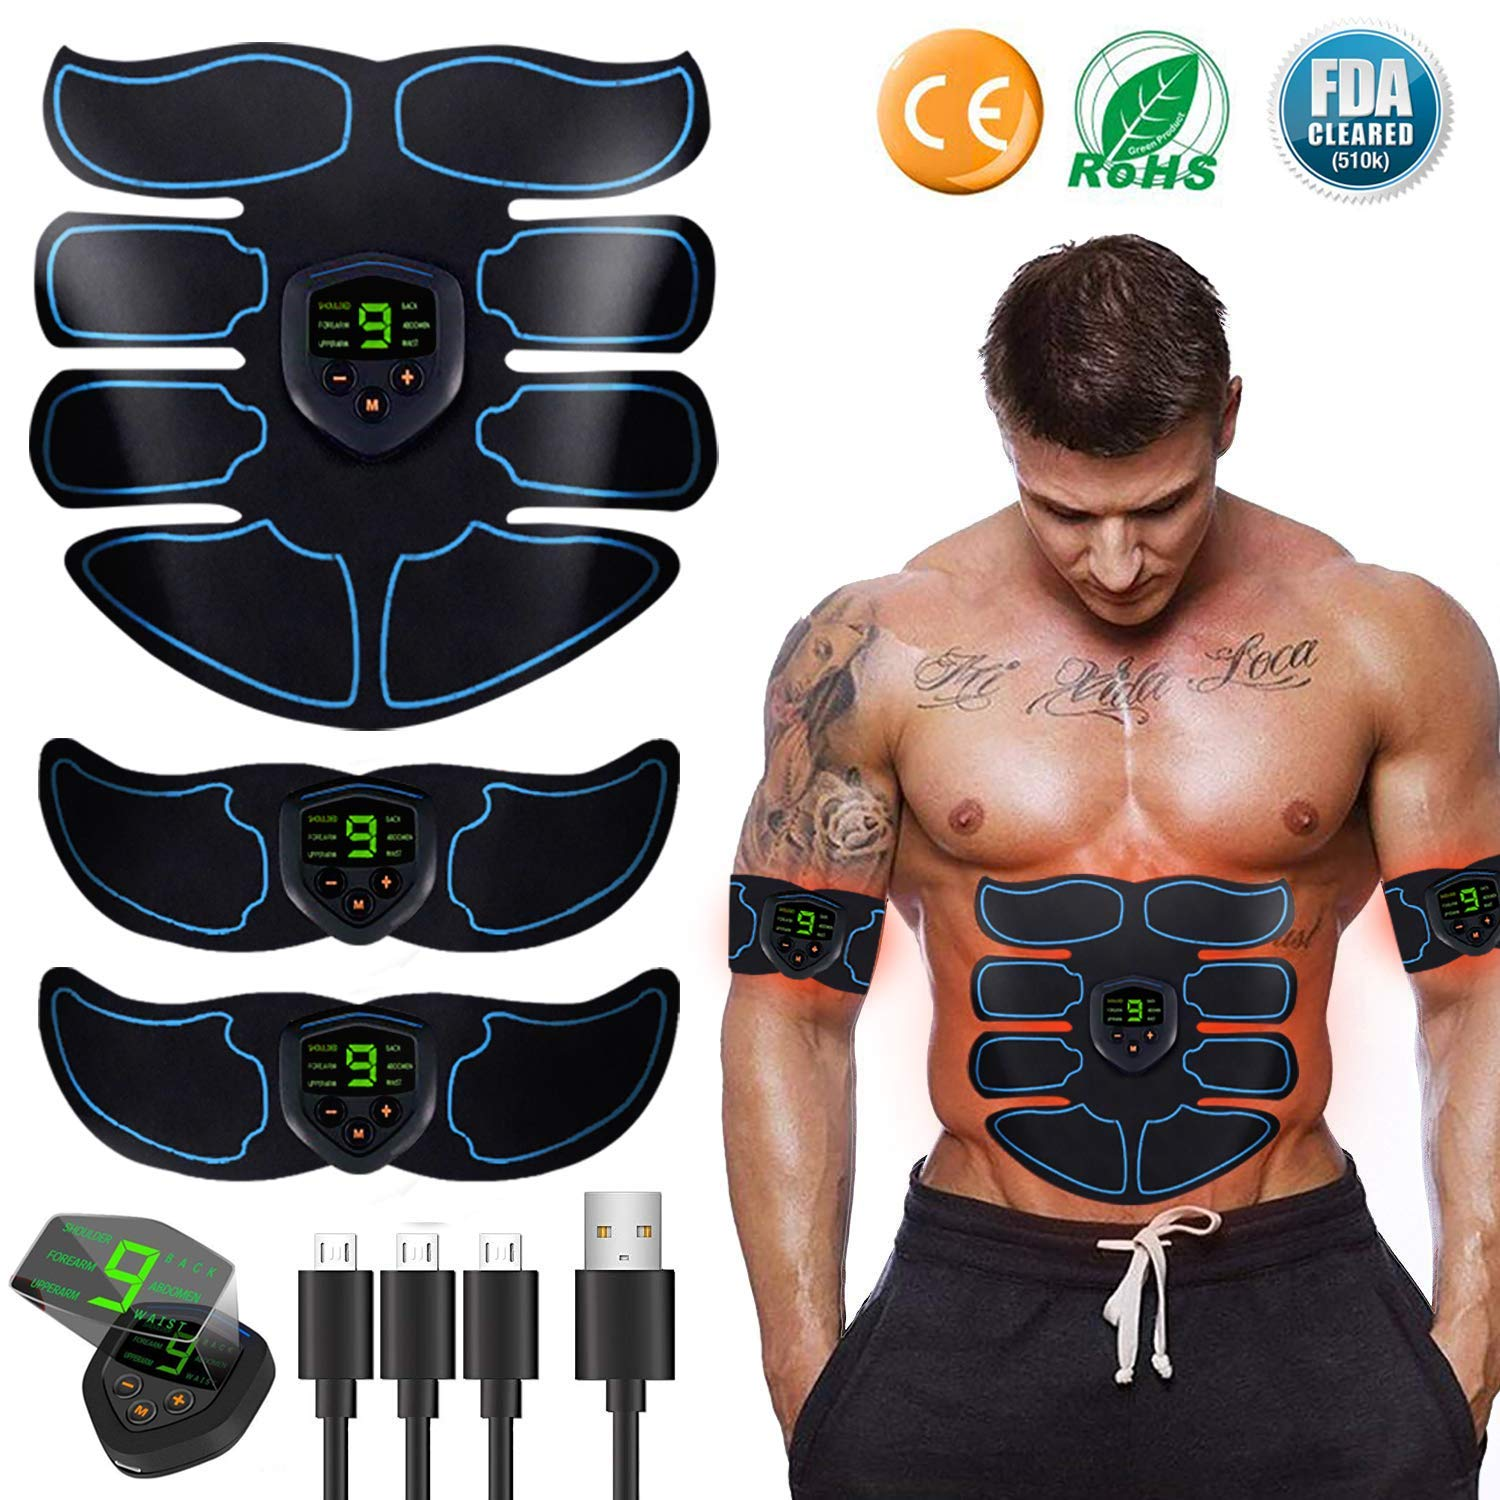 Abs Stimulator Ultimate Muscle Toner, EMS Abdominal Toning Belt for Men and Women, Arm and Leg Trainer, Office, Home Gym Fitness Equipment